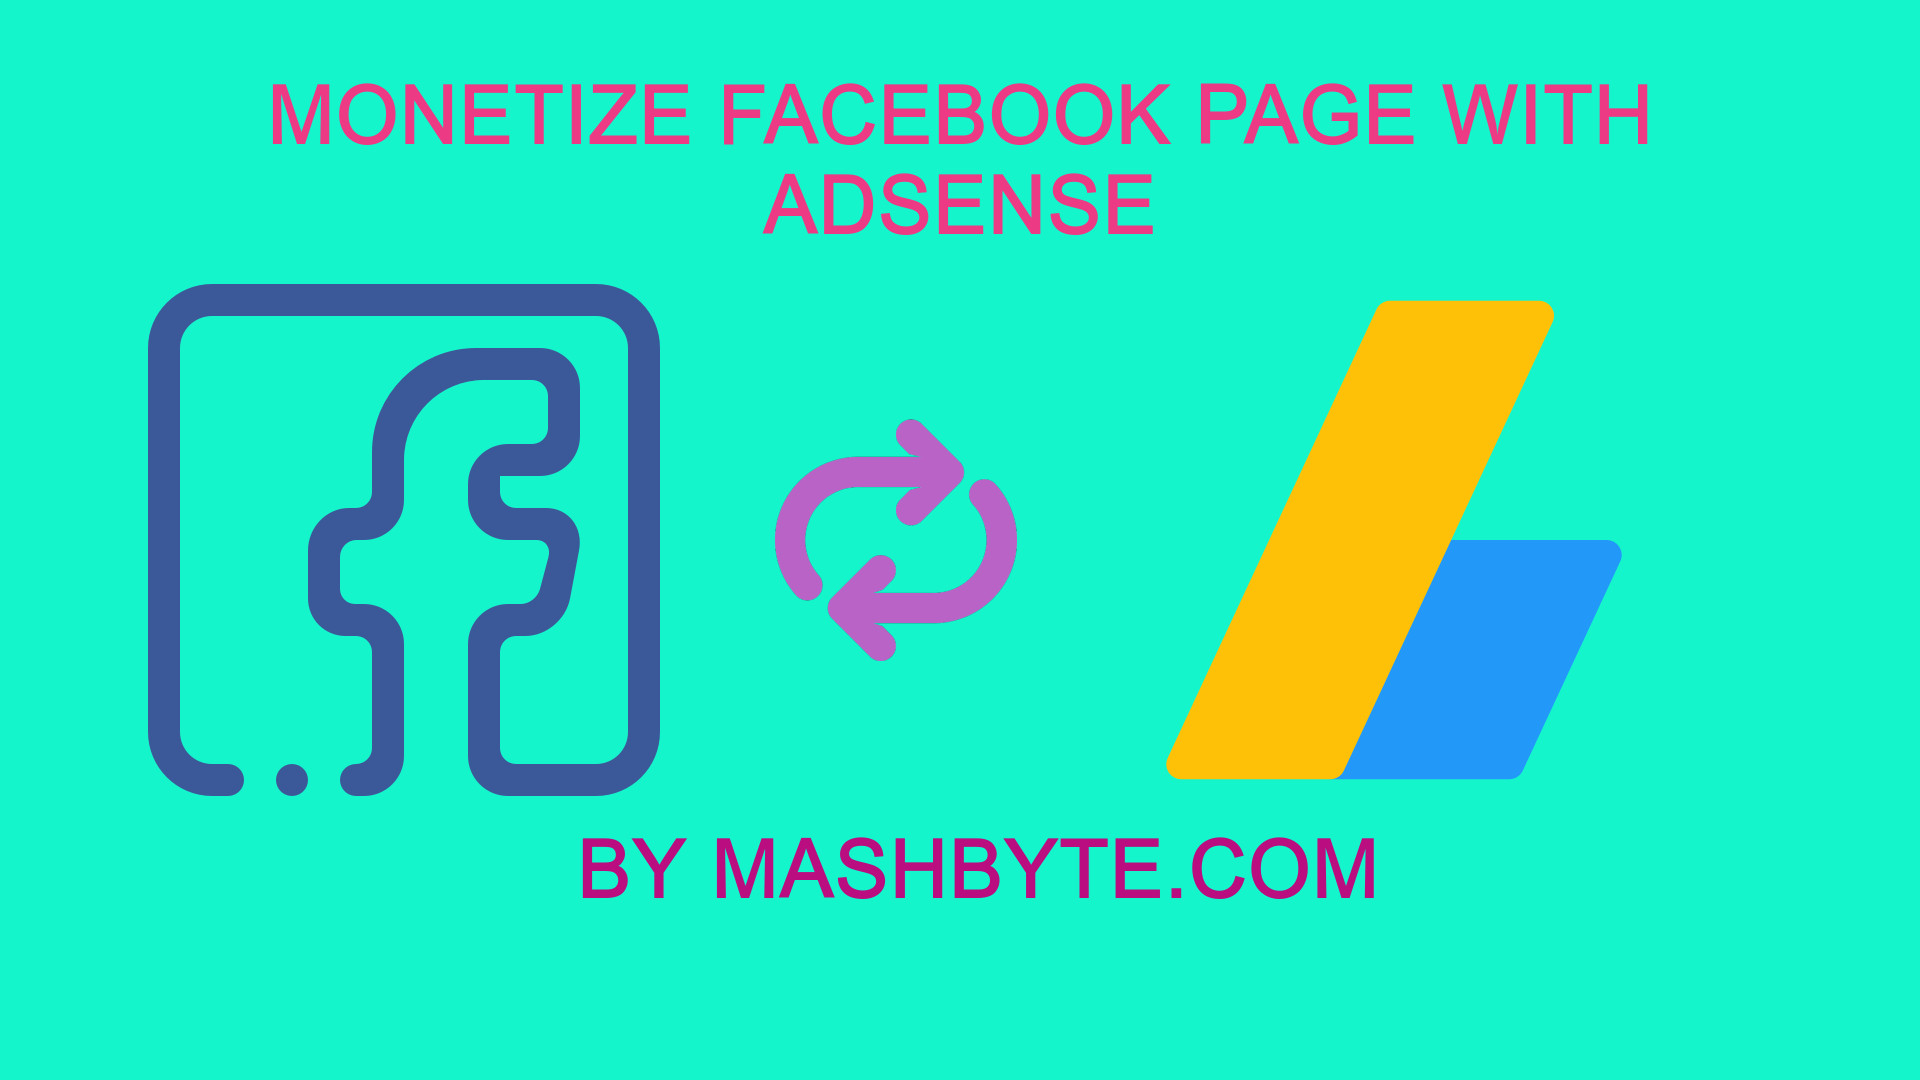 ,Keyword, ,how to monetize facebook page 2019, ,how to monetize facebook page videos, ,how to monetize facebook page with adsense, ,facebook monetization requirements 2020, ,facebook creator studio monetization, ,facebook monetization eligibility countries, ,facebook monetization app, ,facebook monetization payout, ,Keyword, ,facebook monetization payout, ,facebook monetization earnings, ,how to monetize facebook group, ,facebook monetization creator studio, ,where is creator studio on facebook, ,kebijakan monetisasi partner, ,restricted monetization facebook, ,account monetization youtube, ,facebook ad breaks, ,facebook for creators, ,how to earn money from facebook videos, ,make money using facebook $100 a day, ,how to earn money from facebook ads, ,how to earn money from facebook group, ,make money posting ads for companies, ,how to earn money from facebook page likes, ,facebook ad break, ,facebook monetization manager, ,creator studio facebook page, ,facebook monetization eligibility countries, ,how to make money on facebook ads, ,how to monetize facebook page with adsense, ,how to earn money on facebook $500 every day, ,earn money with facebook, ,facebook ad breaks countries 2020, ,how to earn money streaming on facebook, ,ad earning,